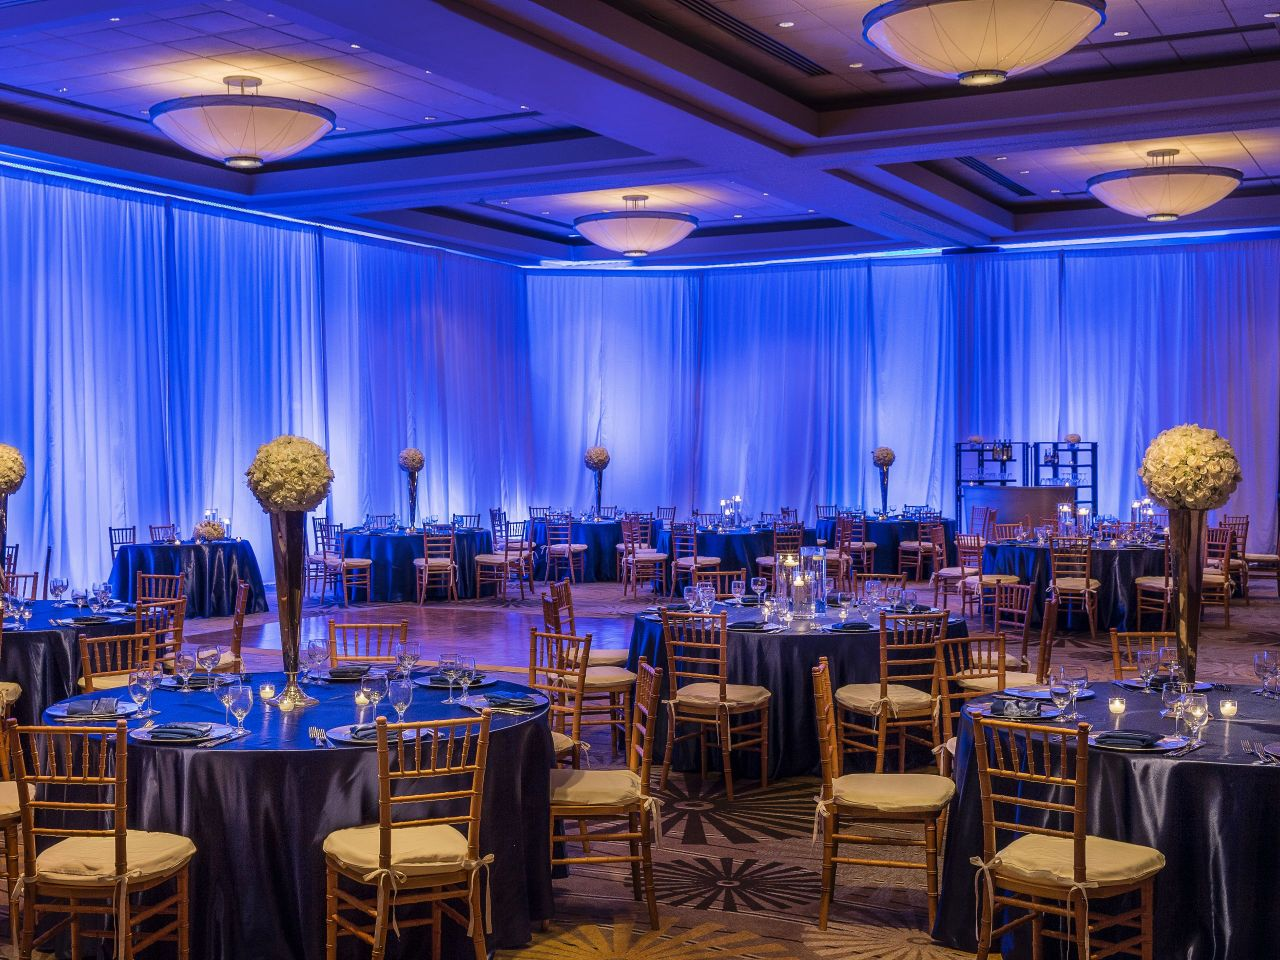 Wedding Venues in Sarasota Florida